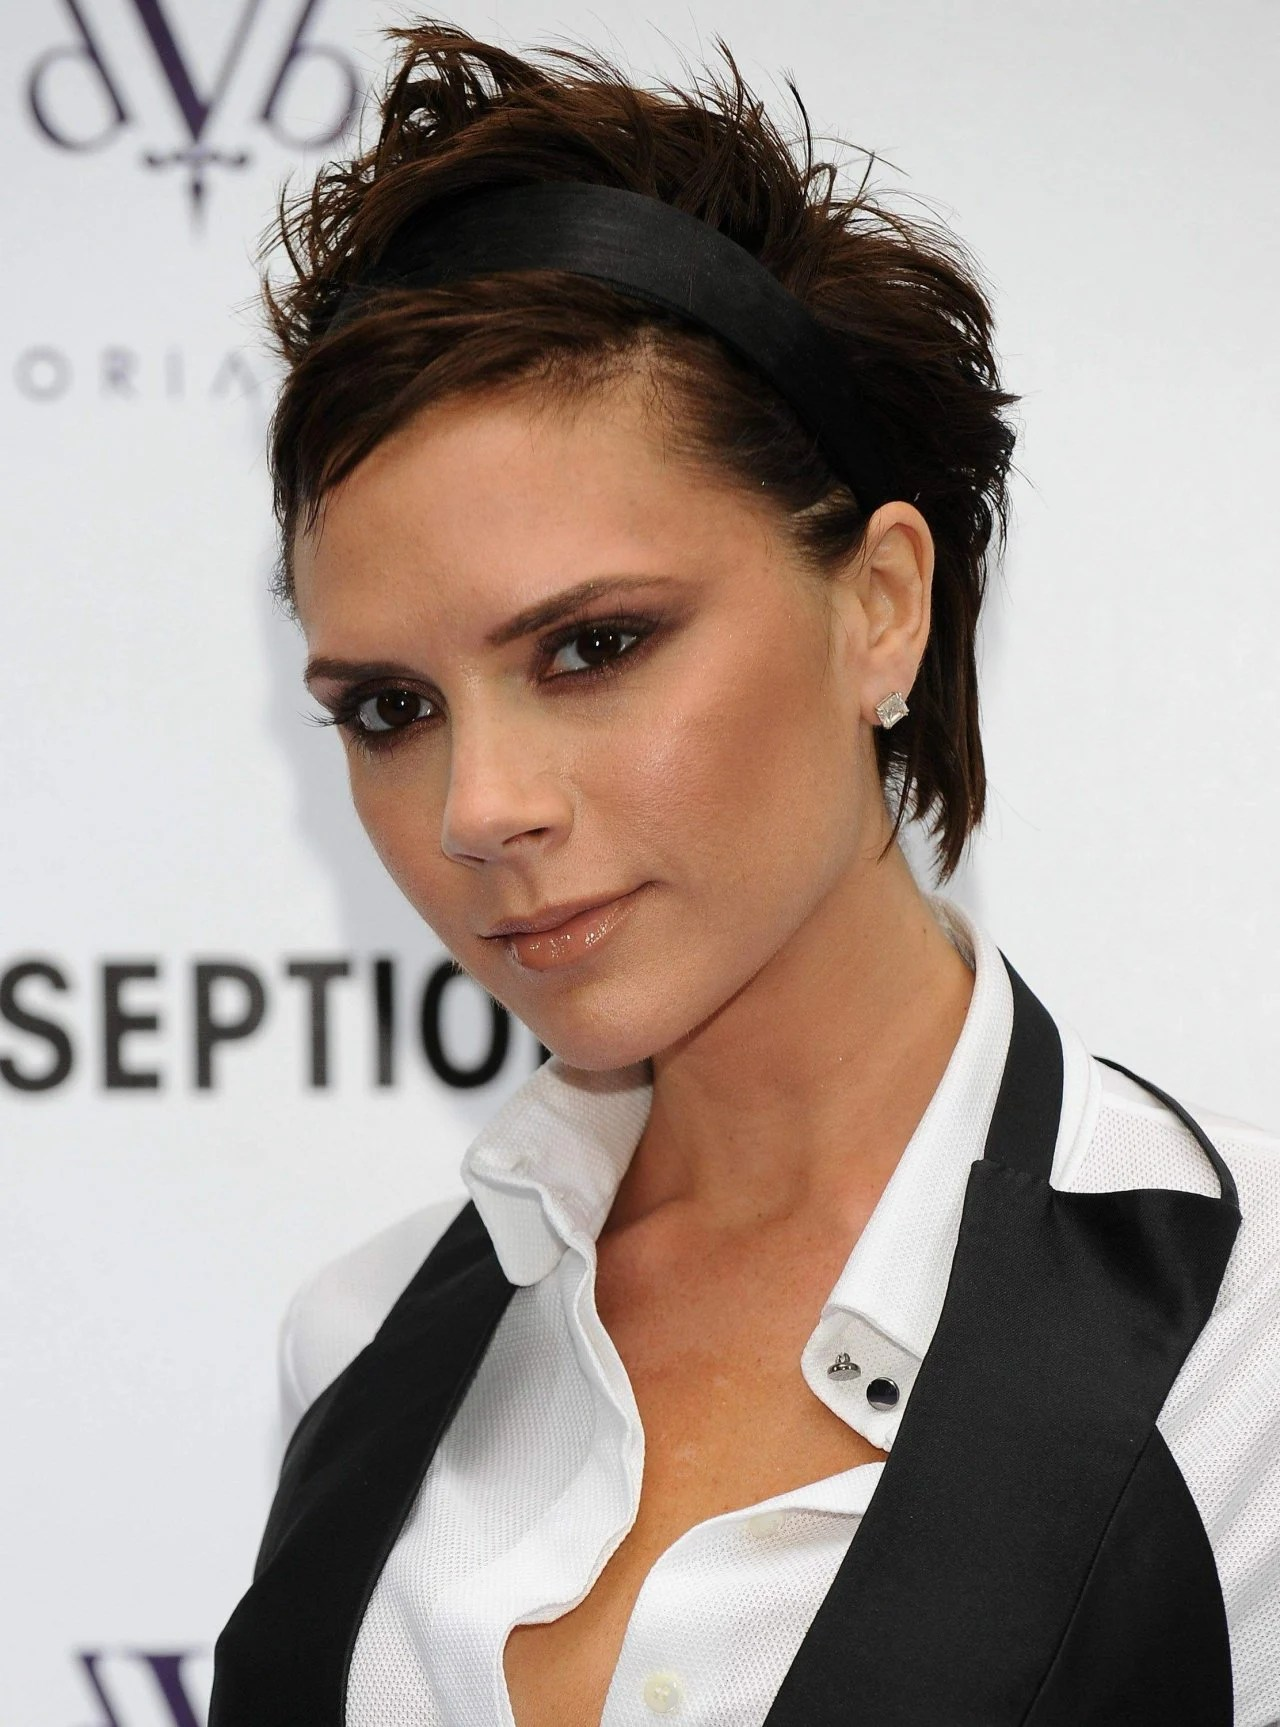 Victoria Beckhams Transition From Posh Spice To Posh